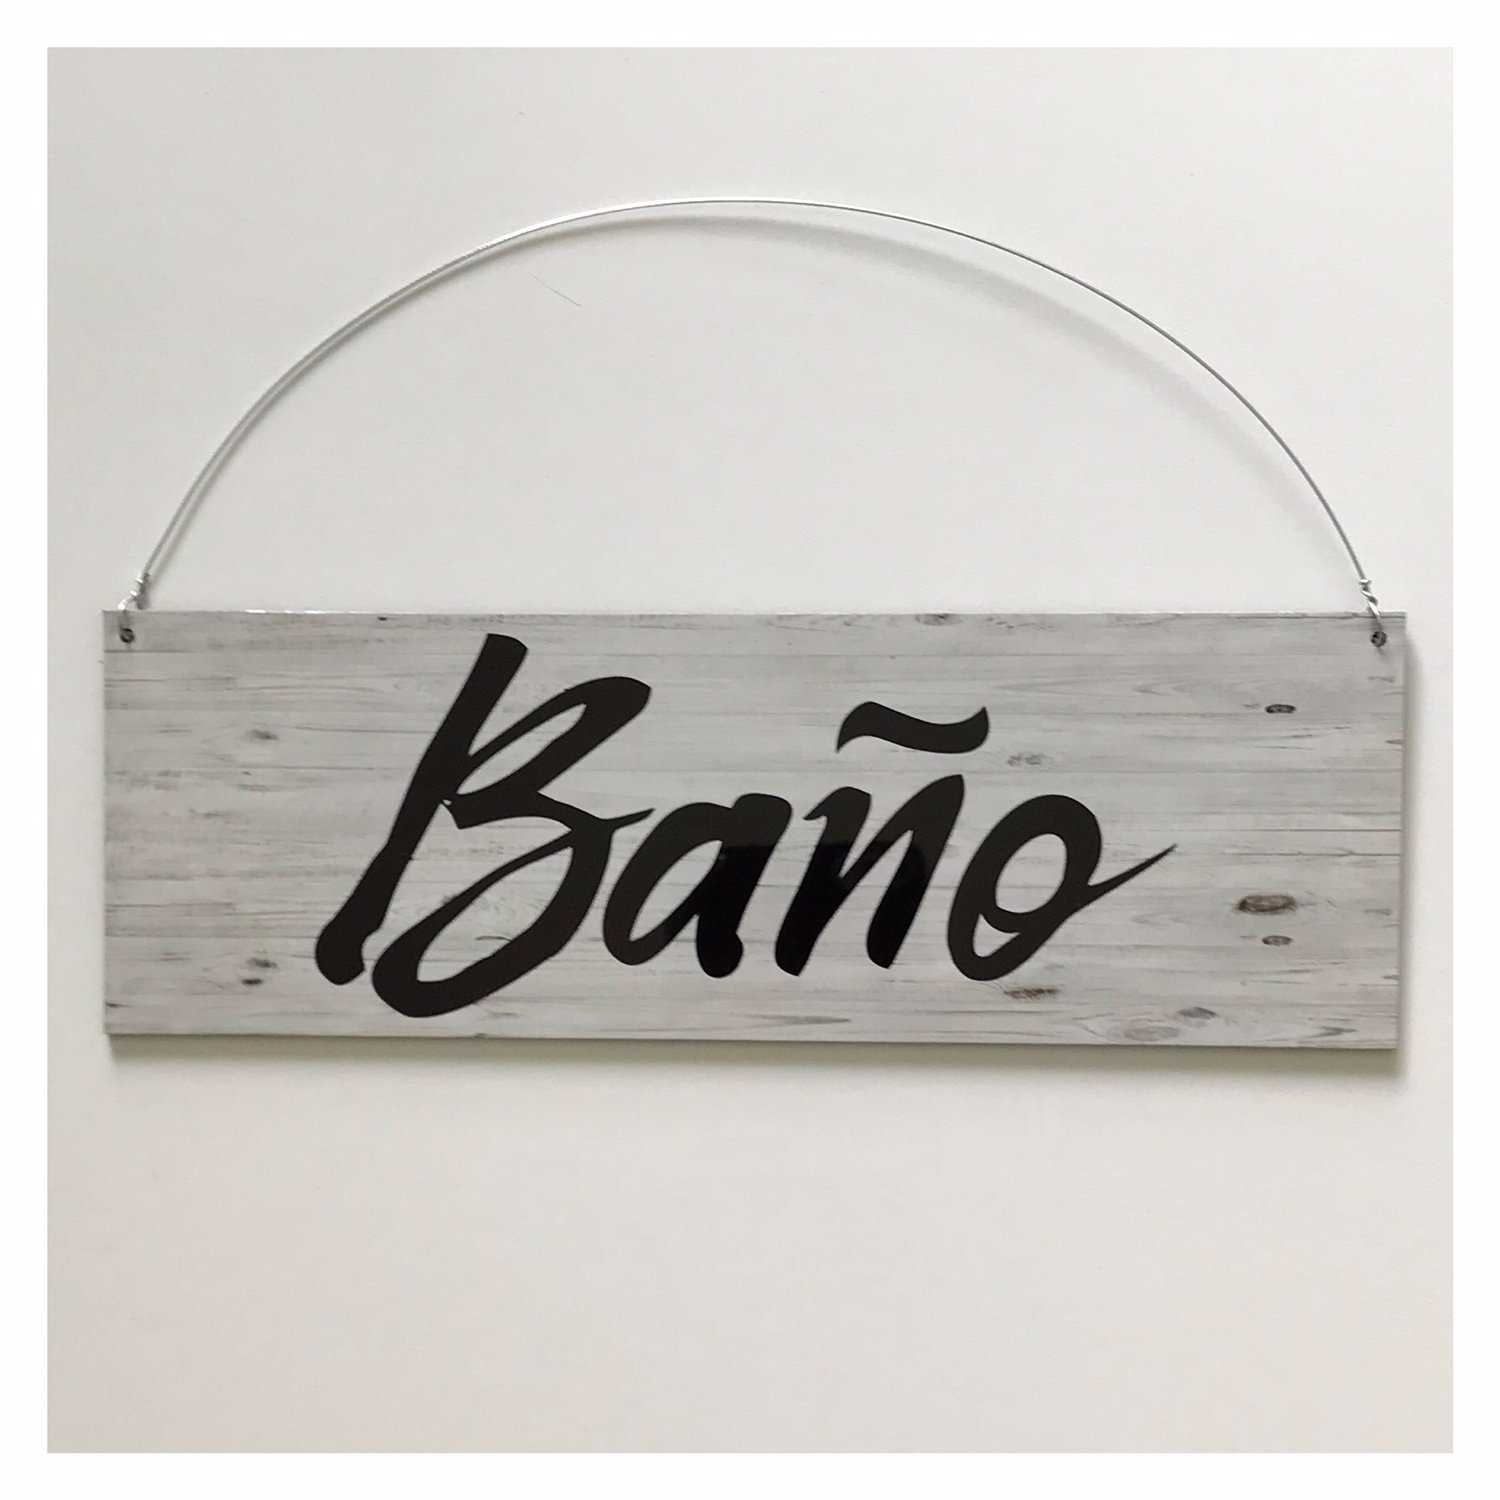 Bano Spanish Spain Toilet Door Sign | The Renmy Store